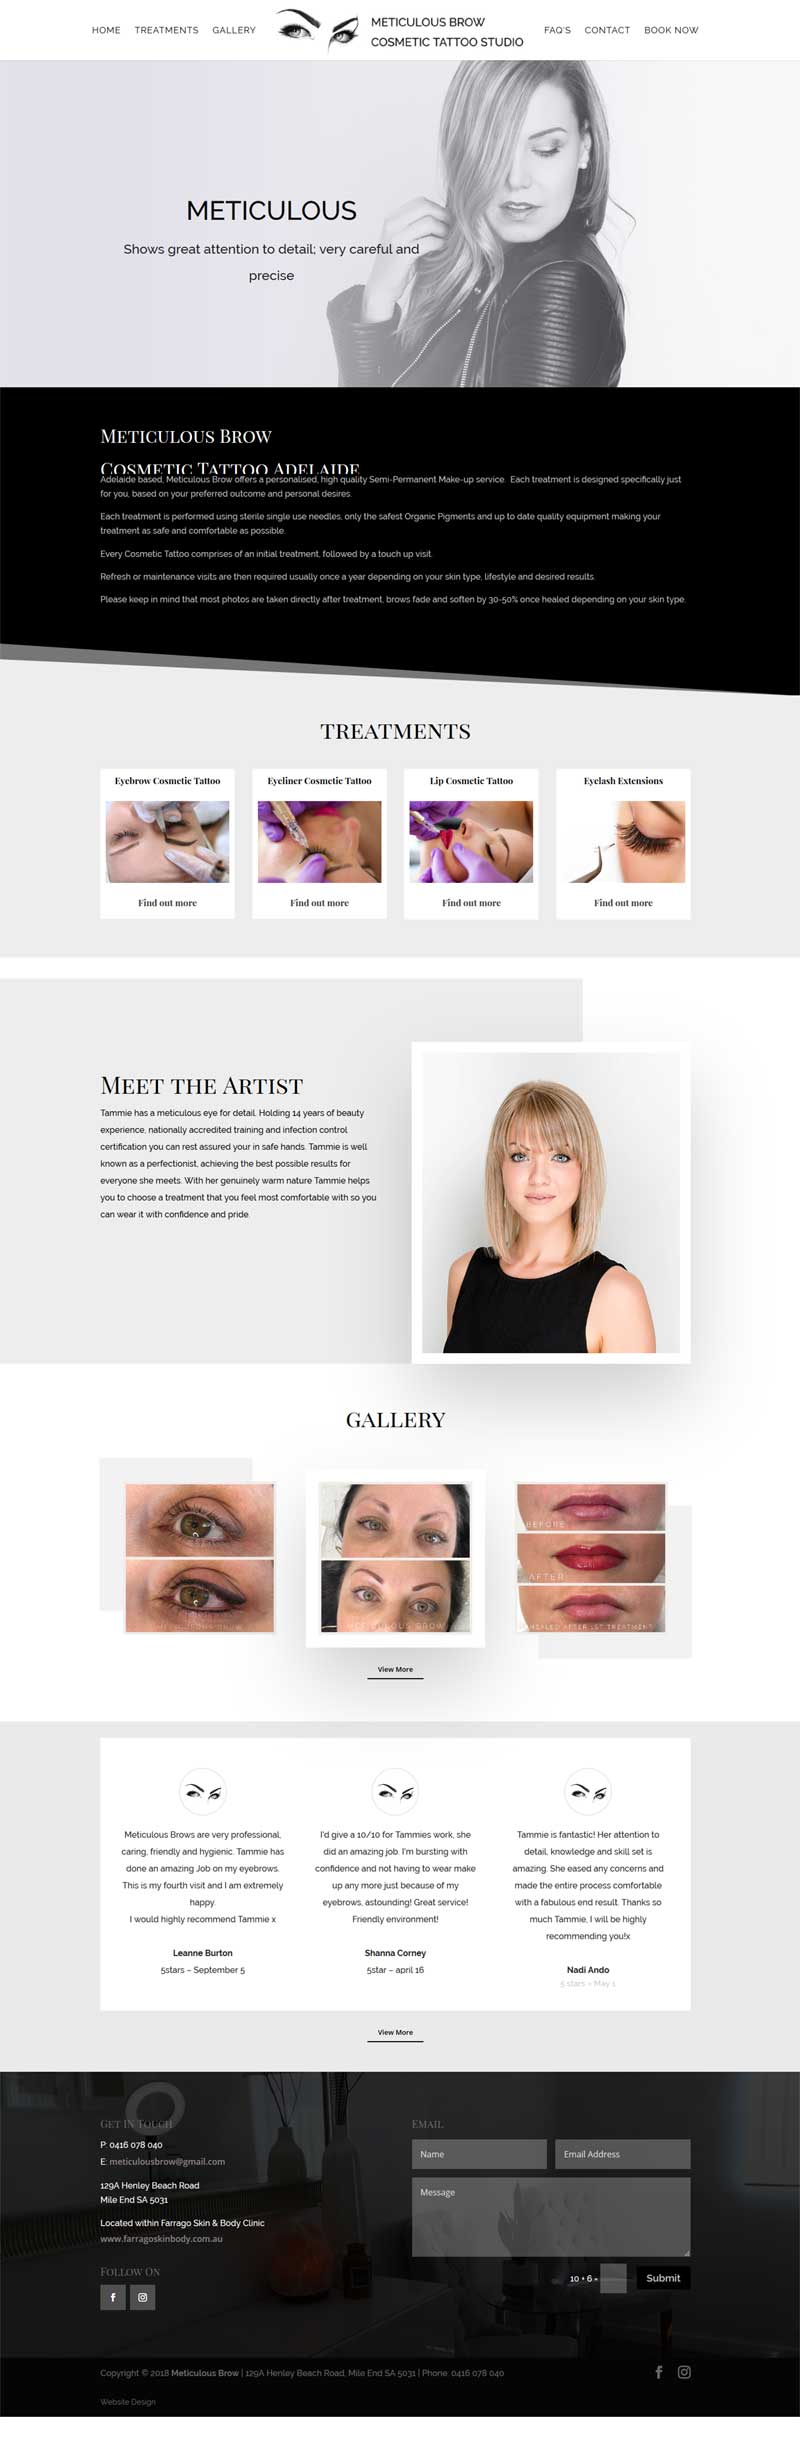 meticulous brow website design adelaide